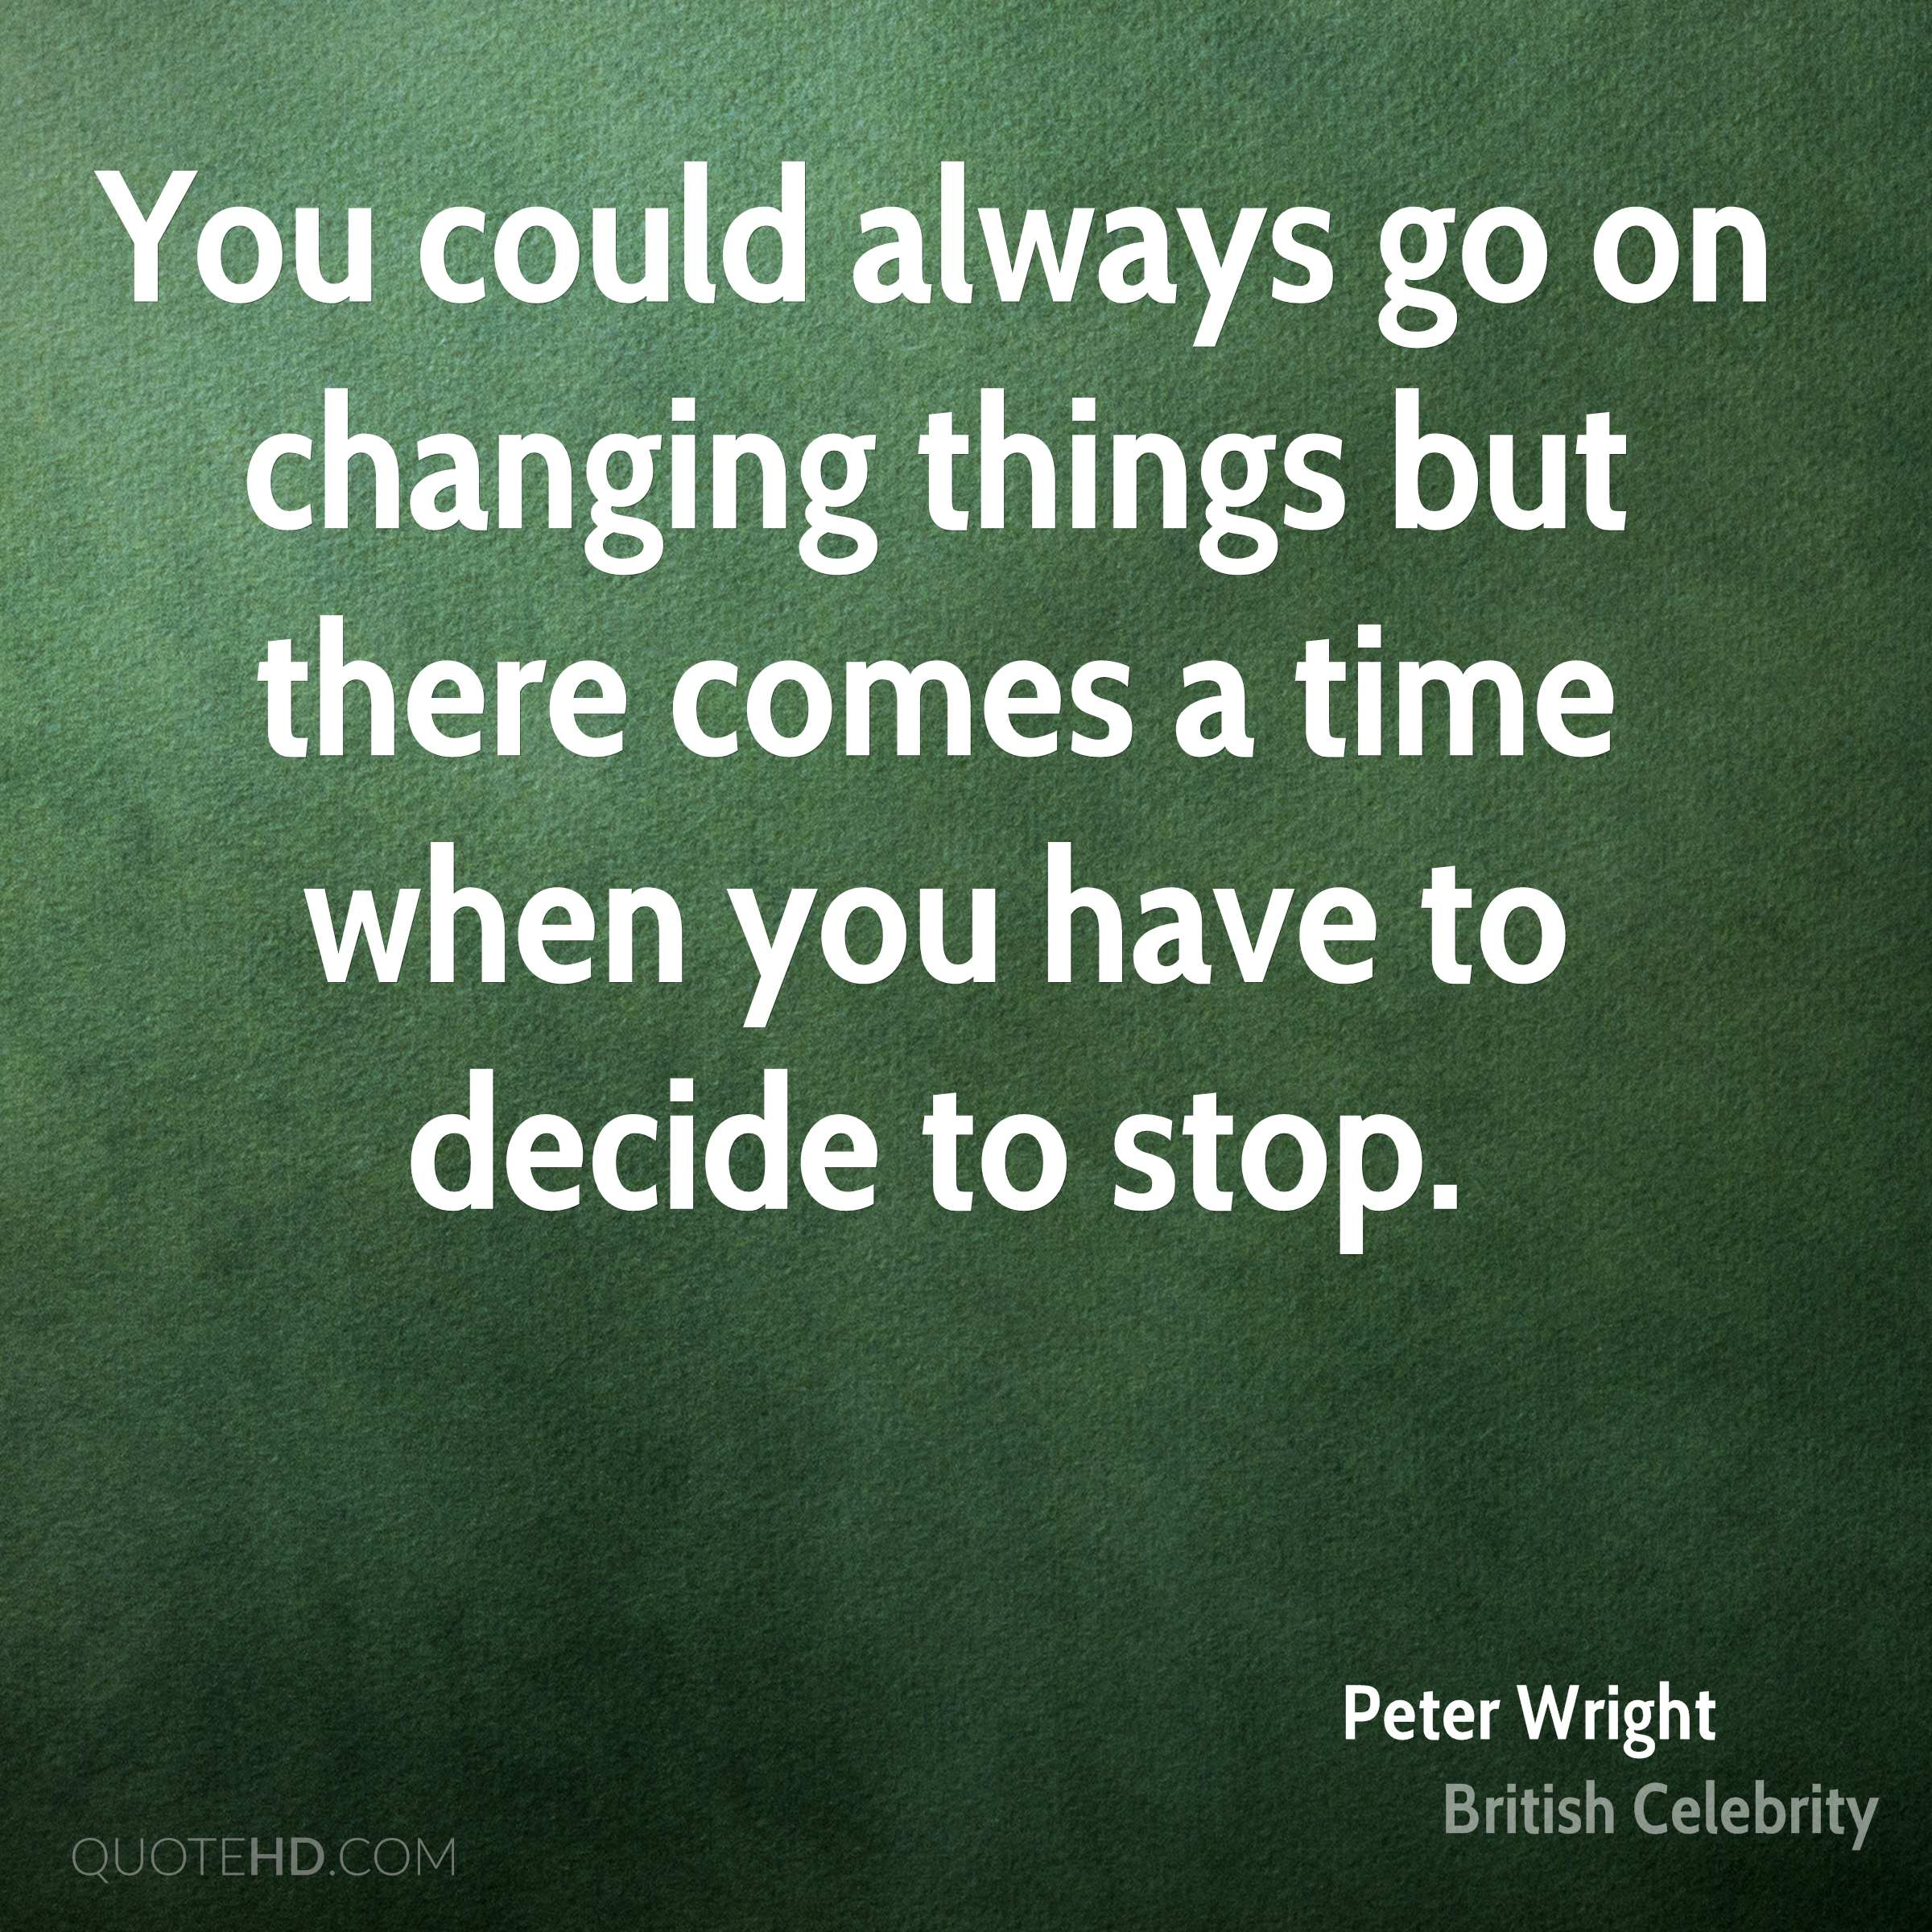 You could always go on changing things but there comes a time when you have to decide to stop.